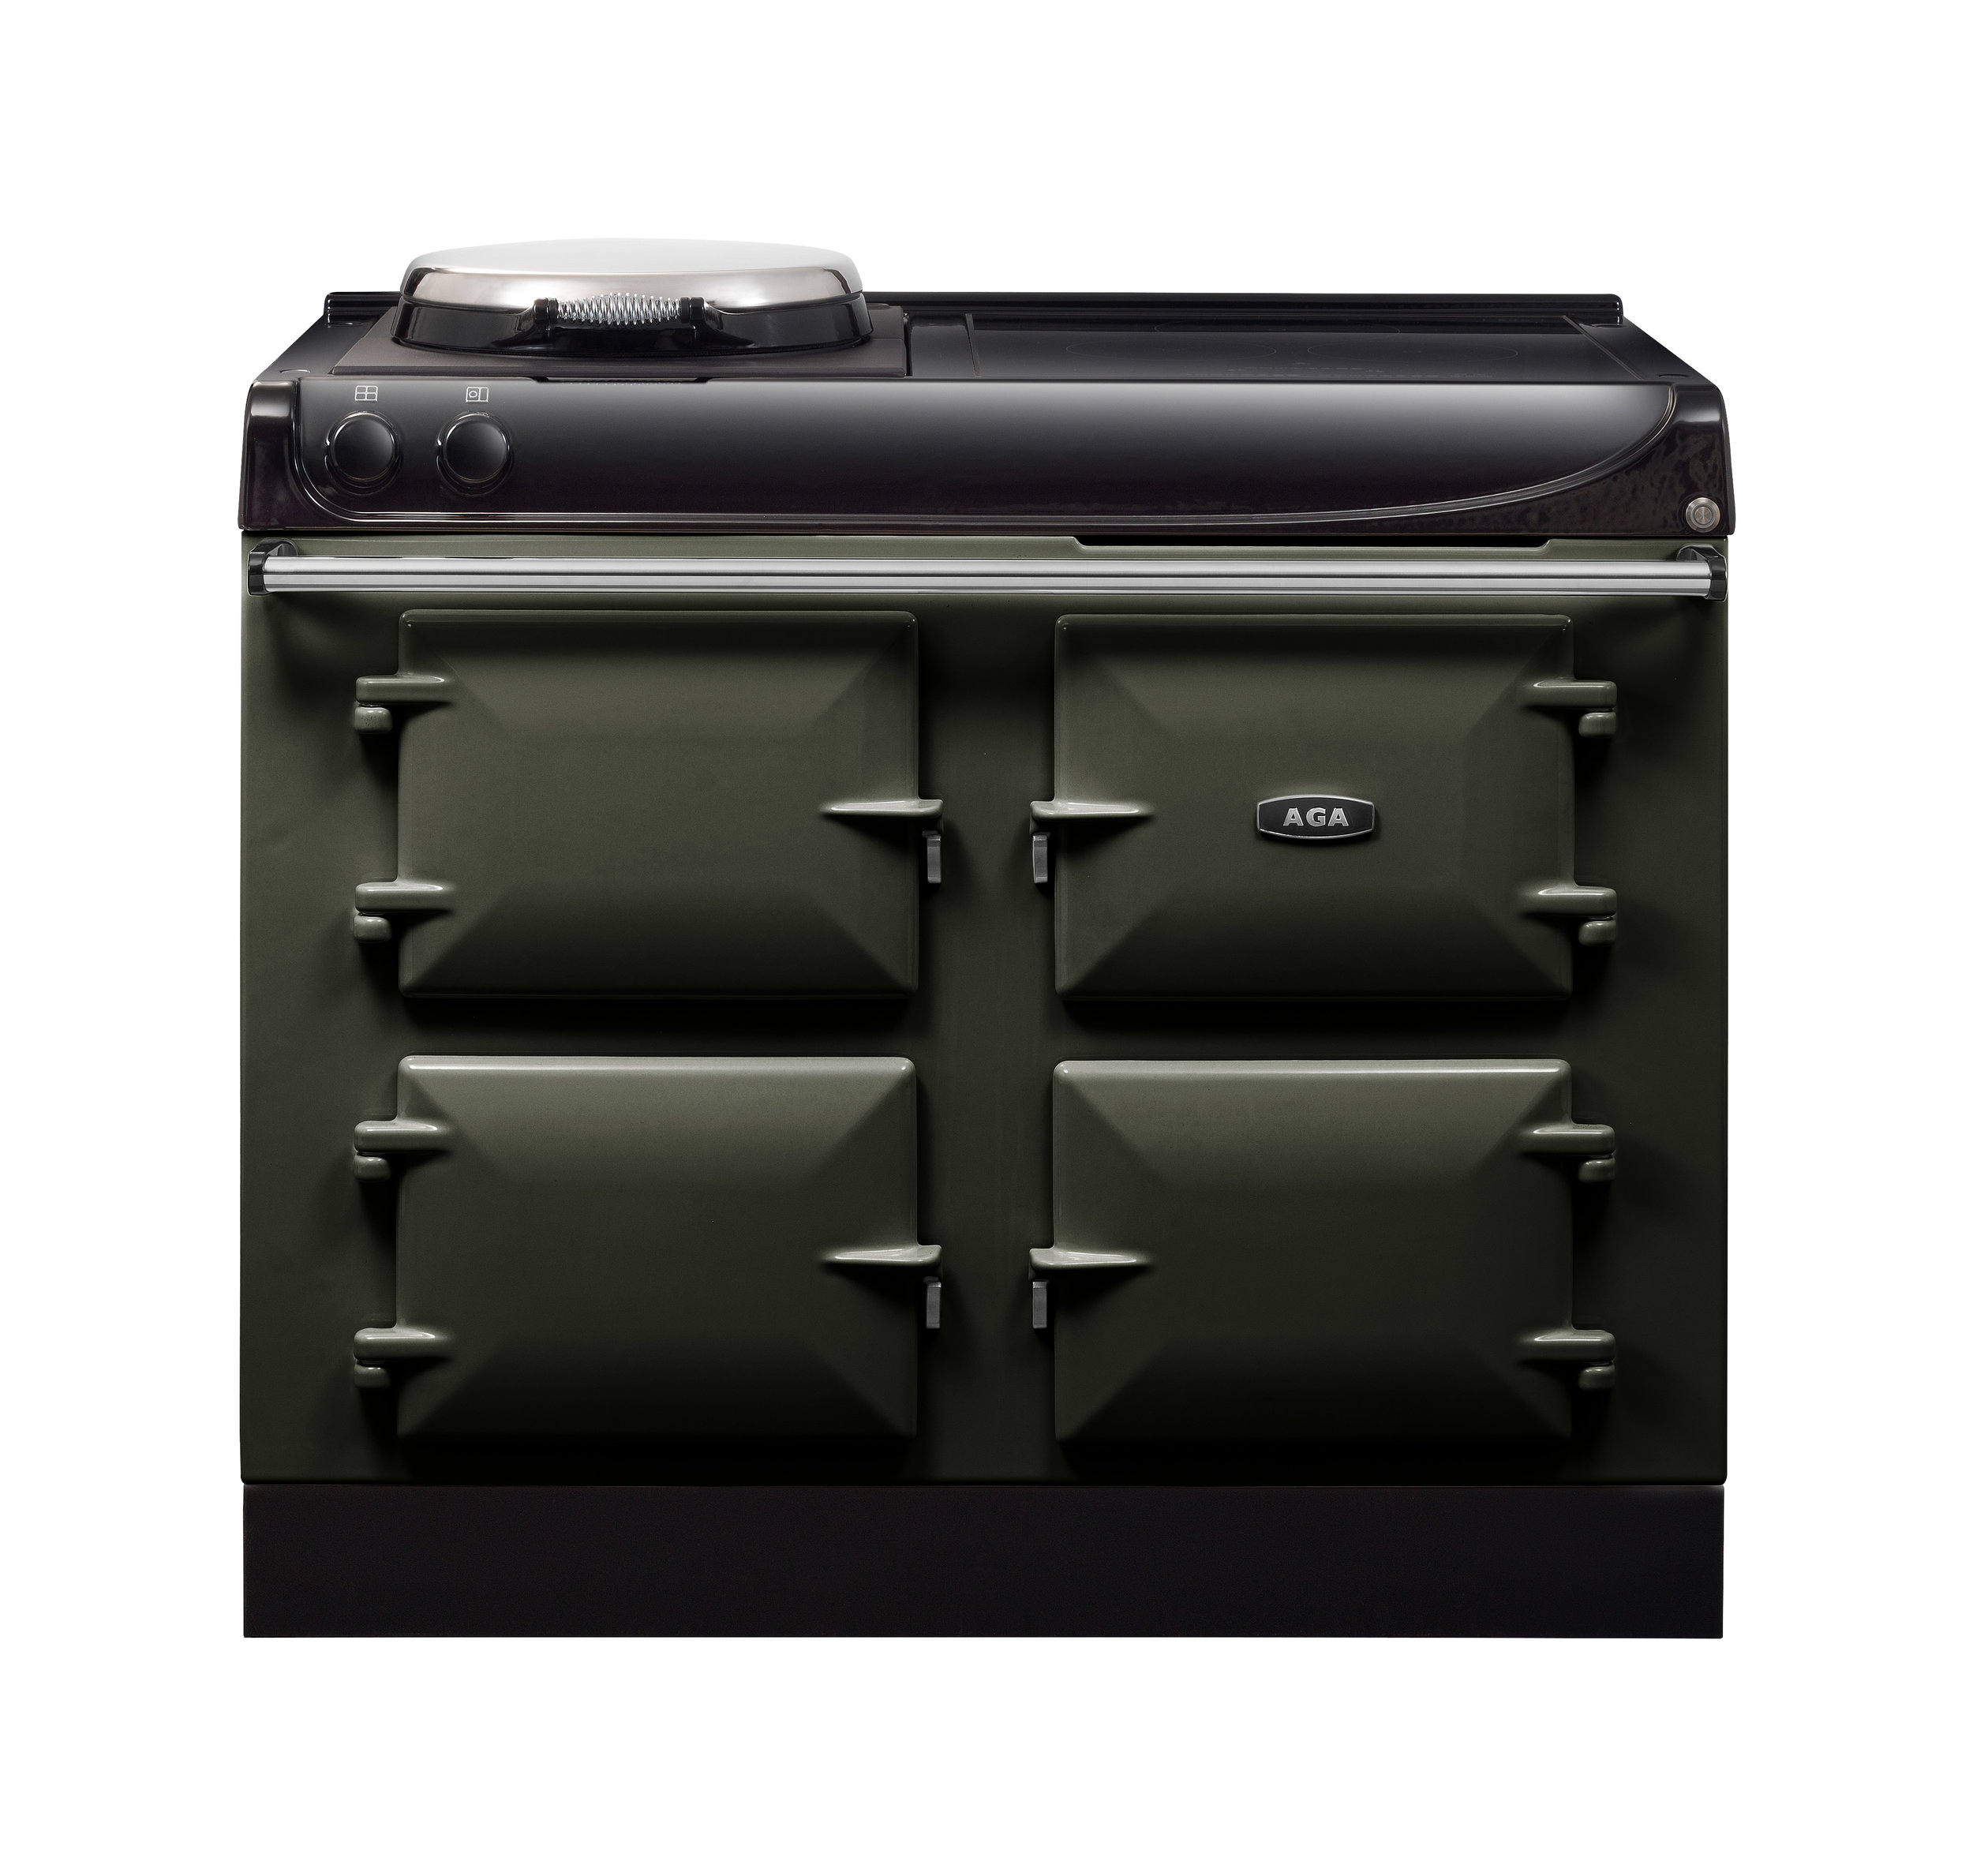 AGA 3 Series 110_Pewter.jpg